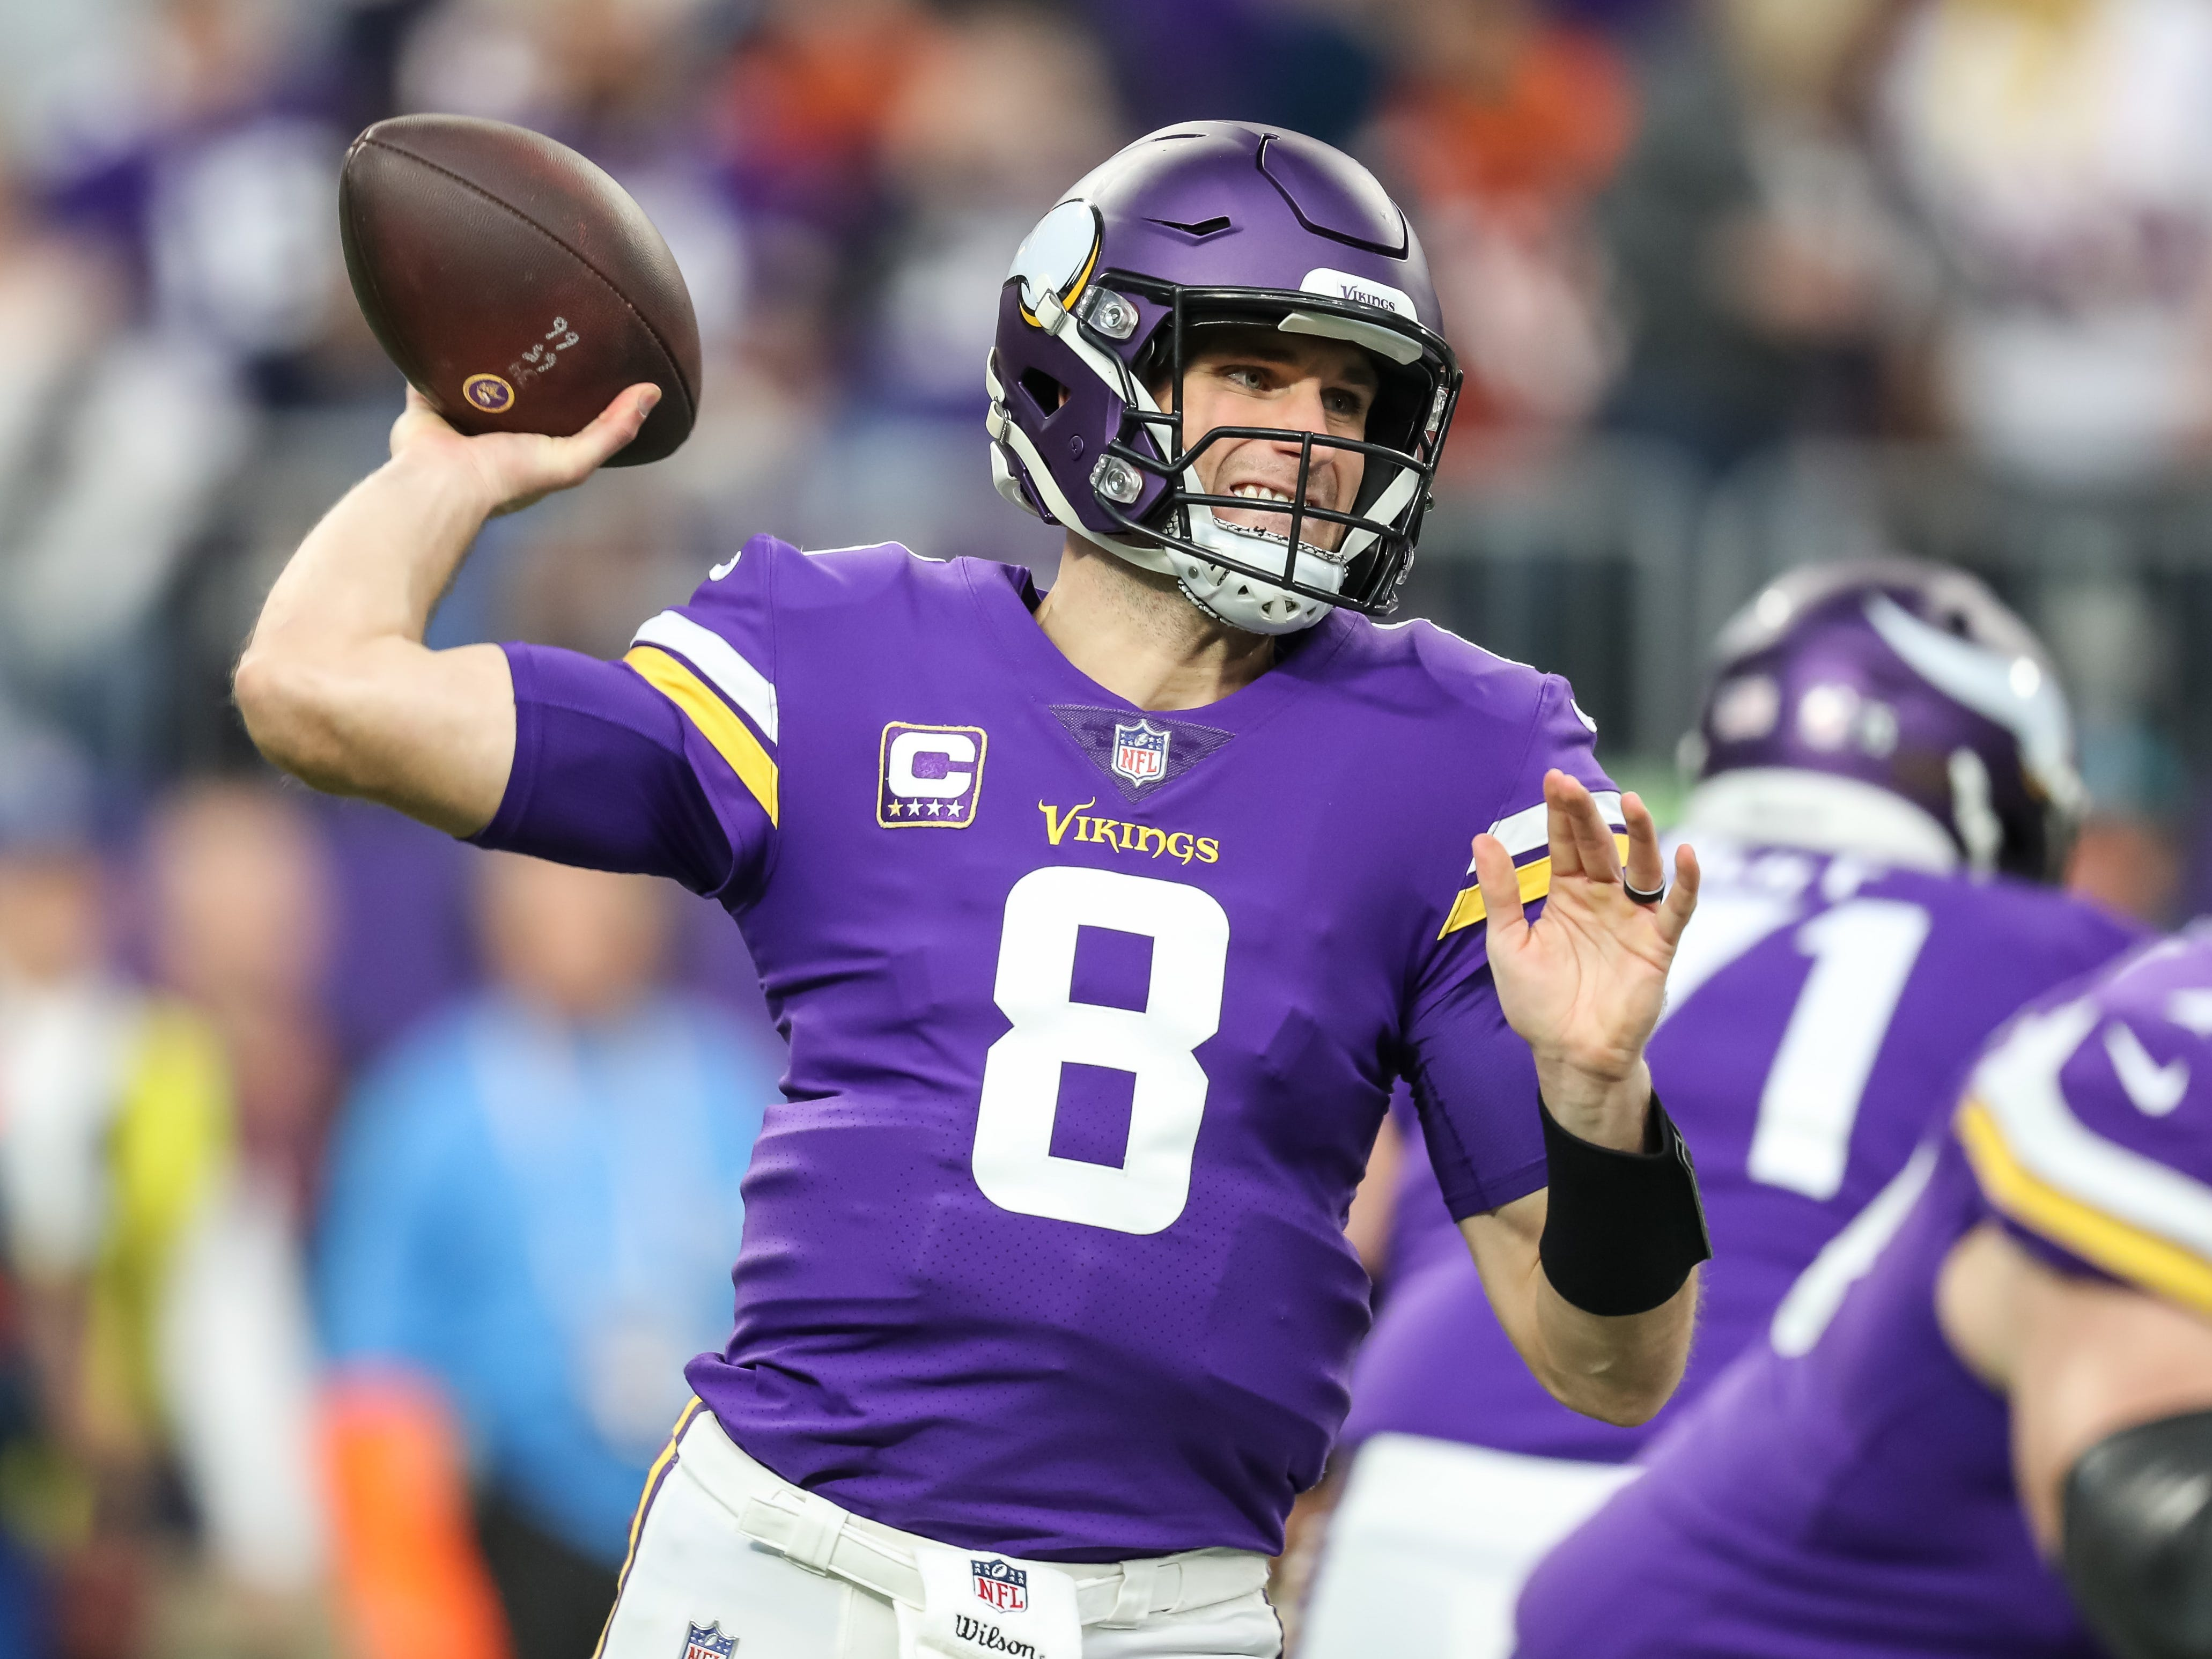 11. Vikings (15): With year in Minnesota under his belt and salary cap airtight, it's completely fair to weigh wisdom of Kirk Cousins deal moving forward.